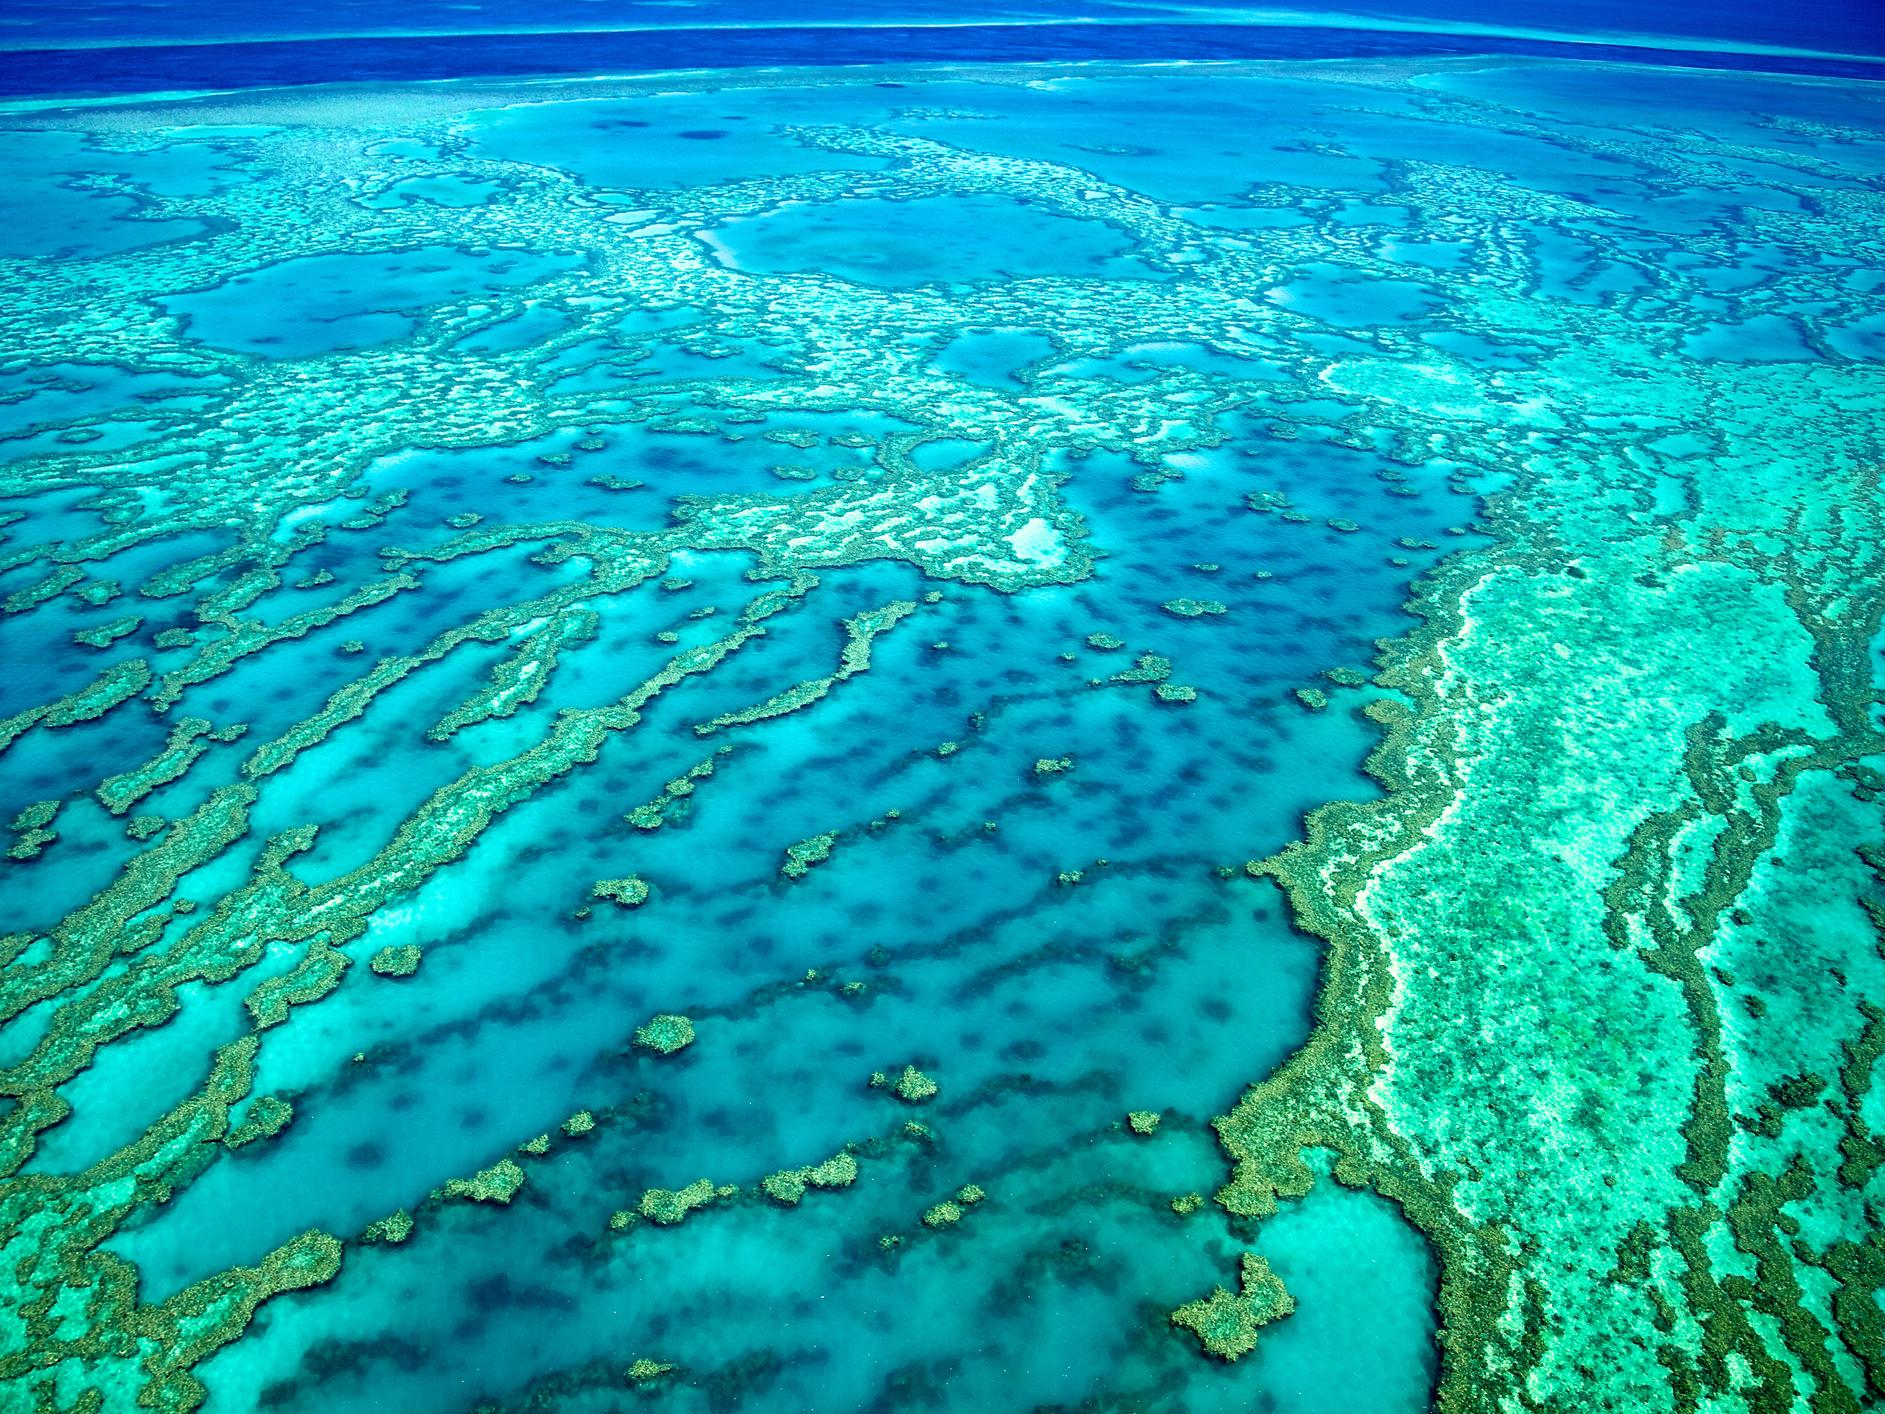 Destruction of native Australian forest approved despite threat posed to neighbouring Great Barrier Reef